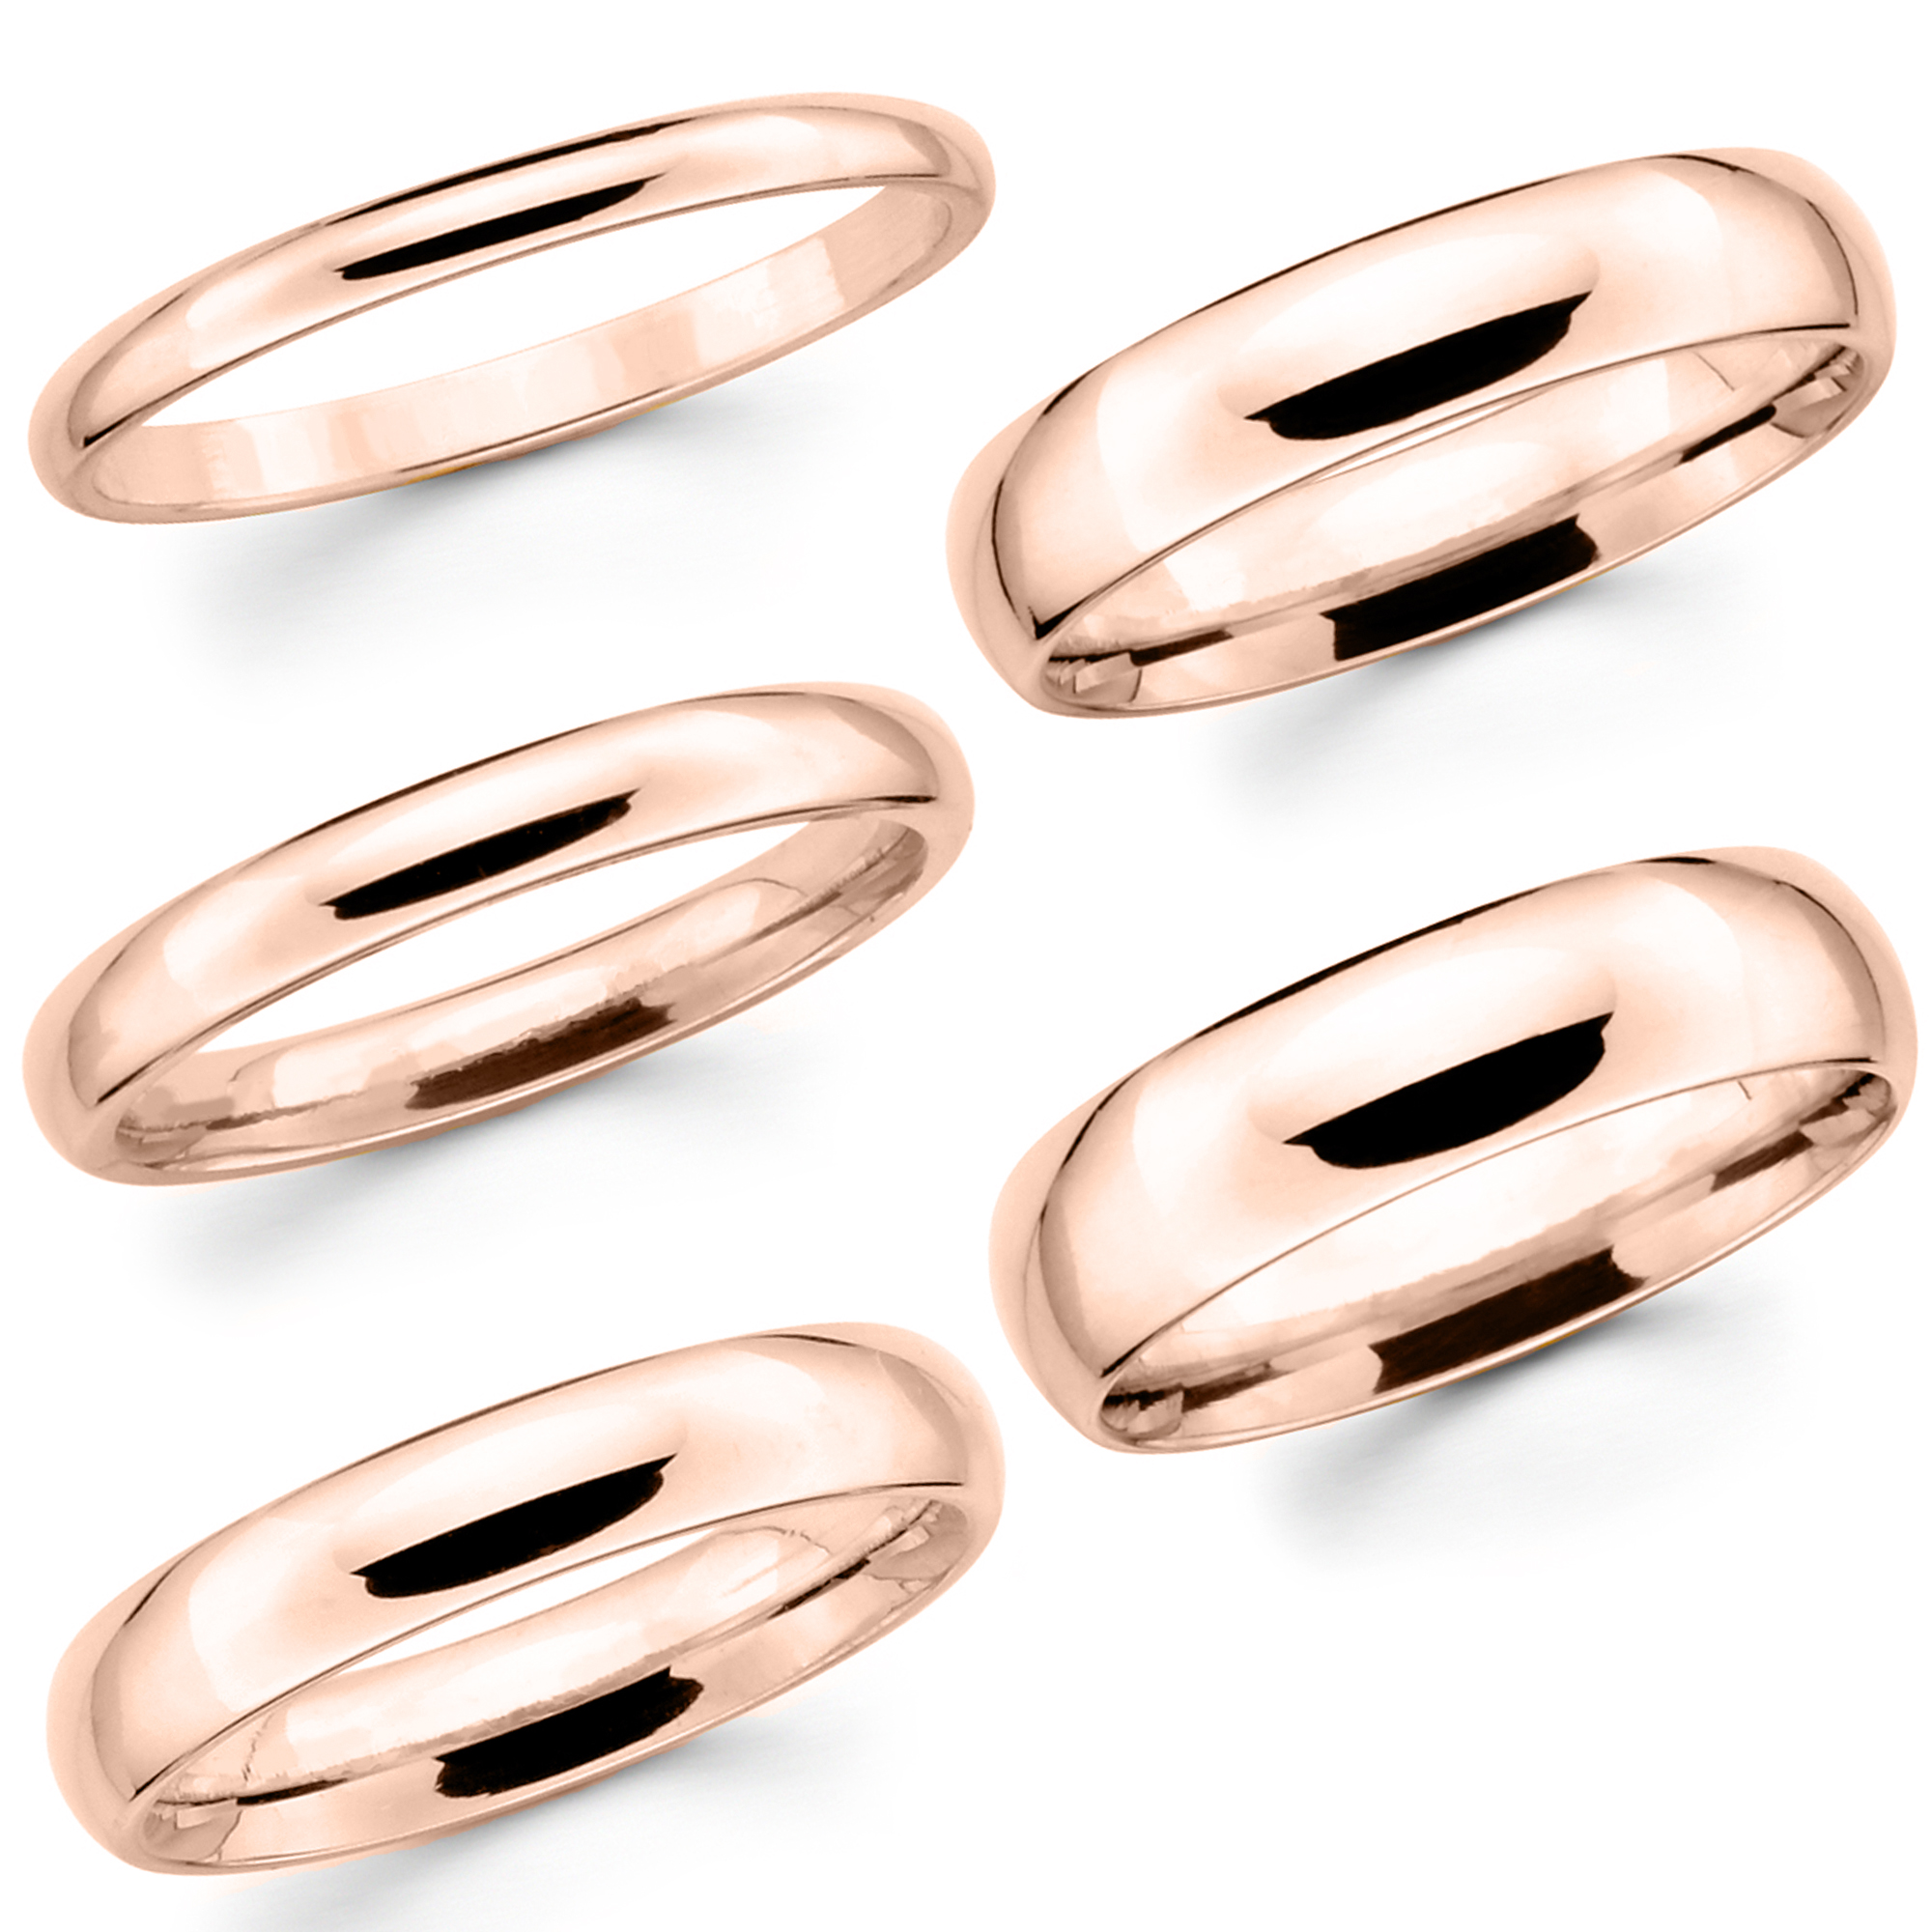 products and double halo band set round platinum engagement wedding m bands curved ring